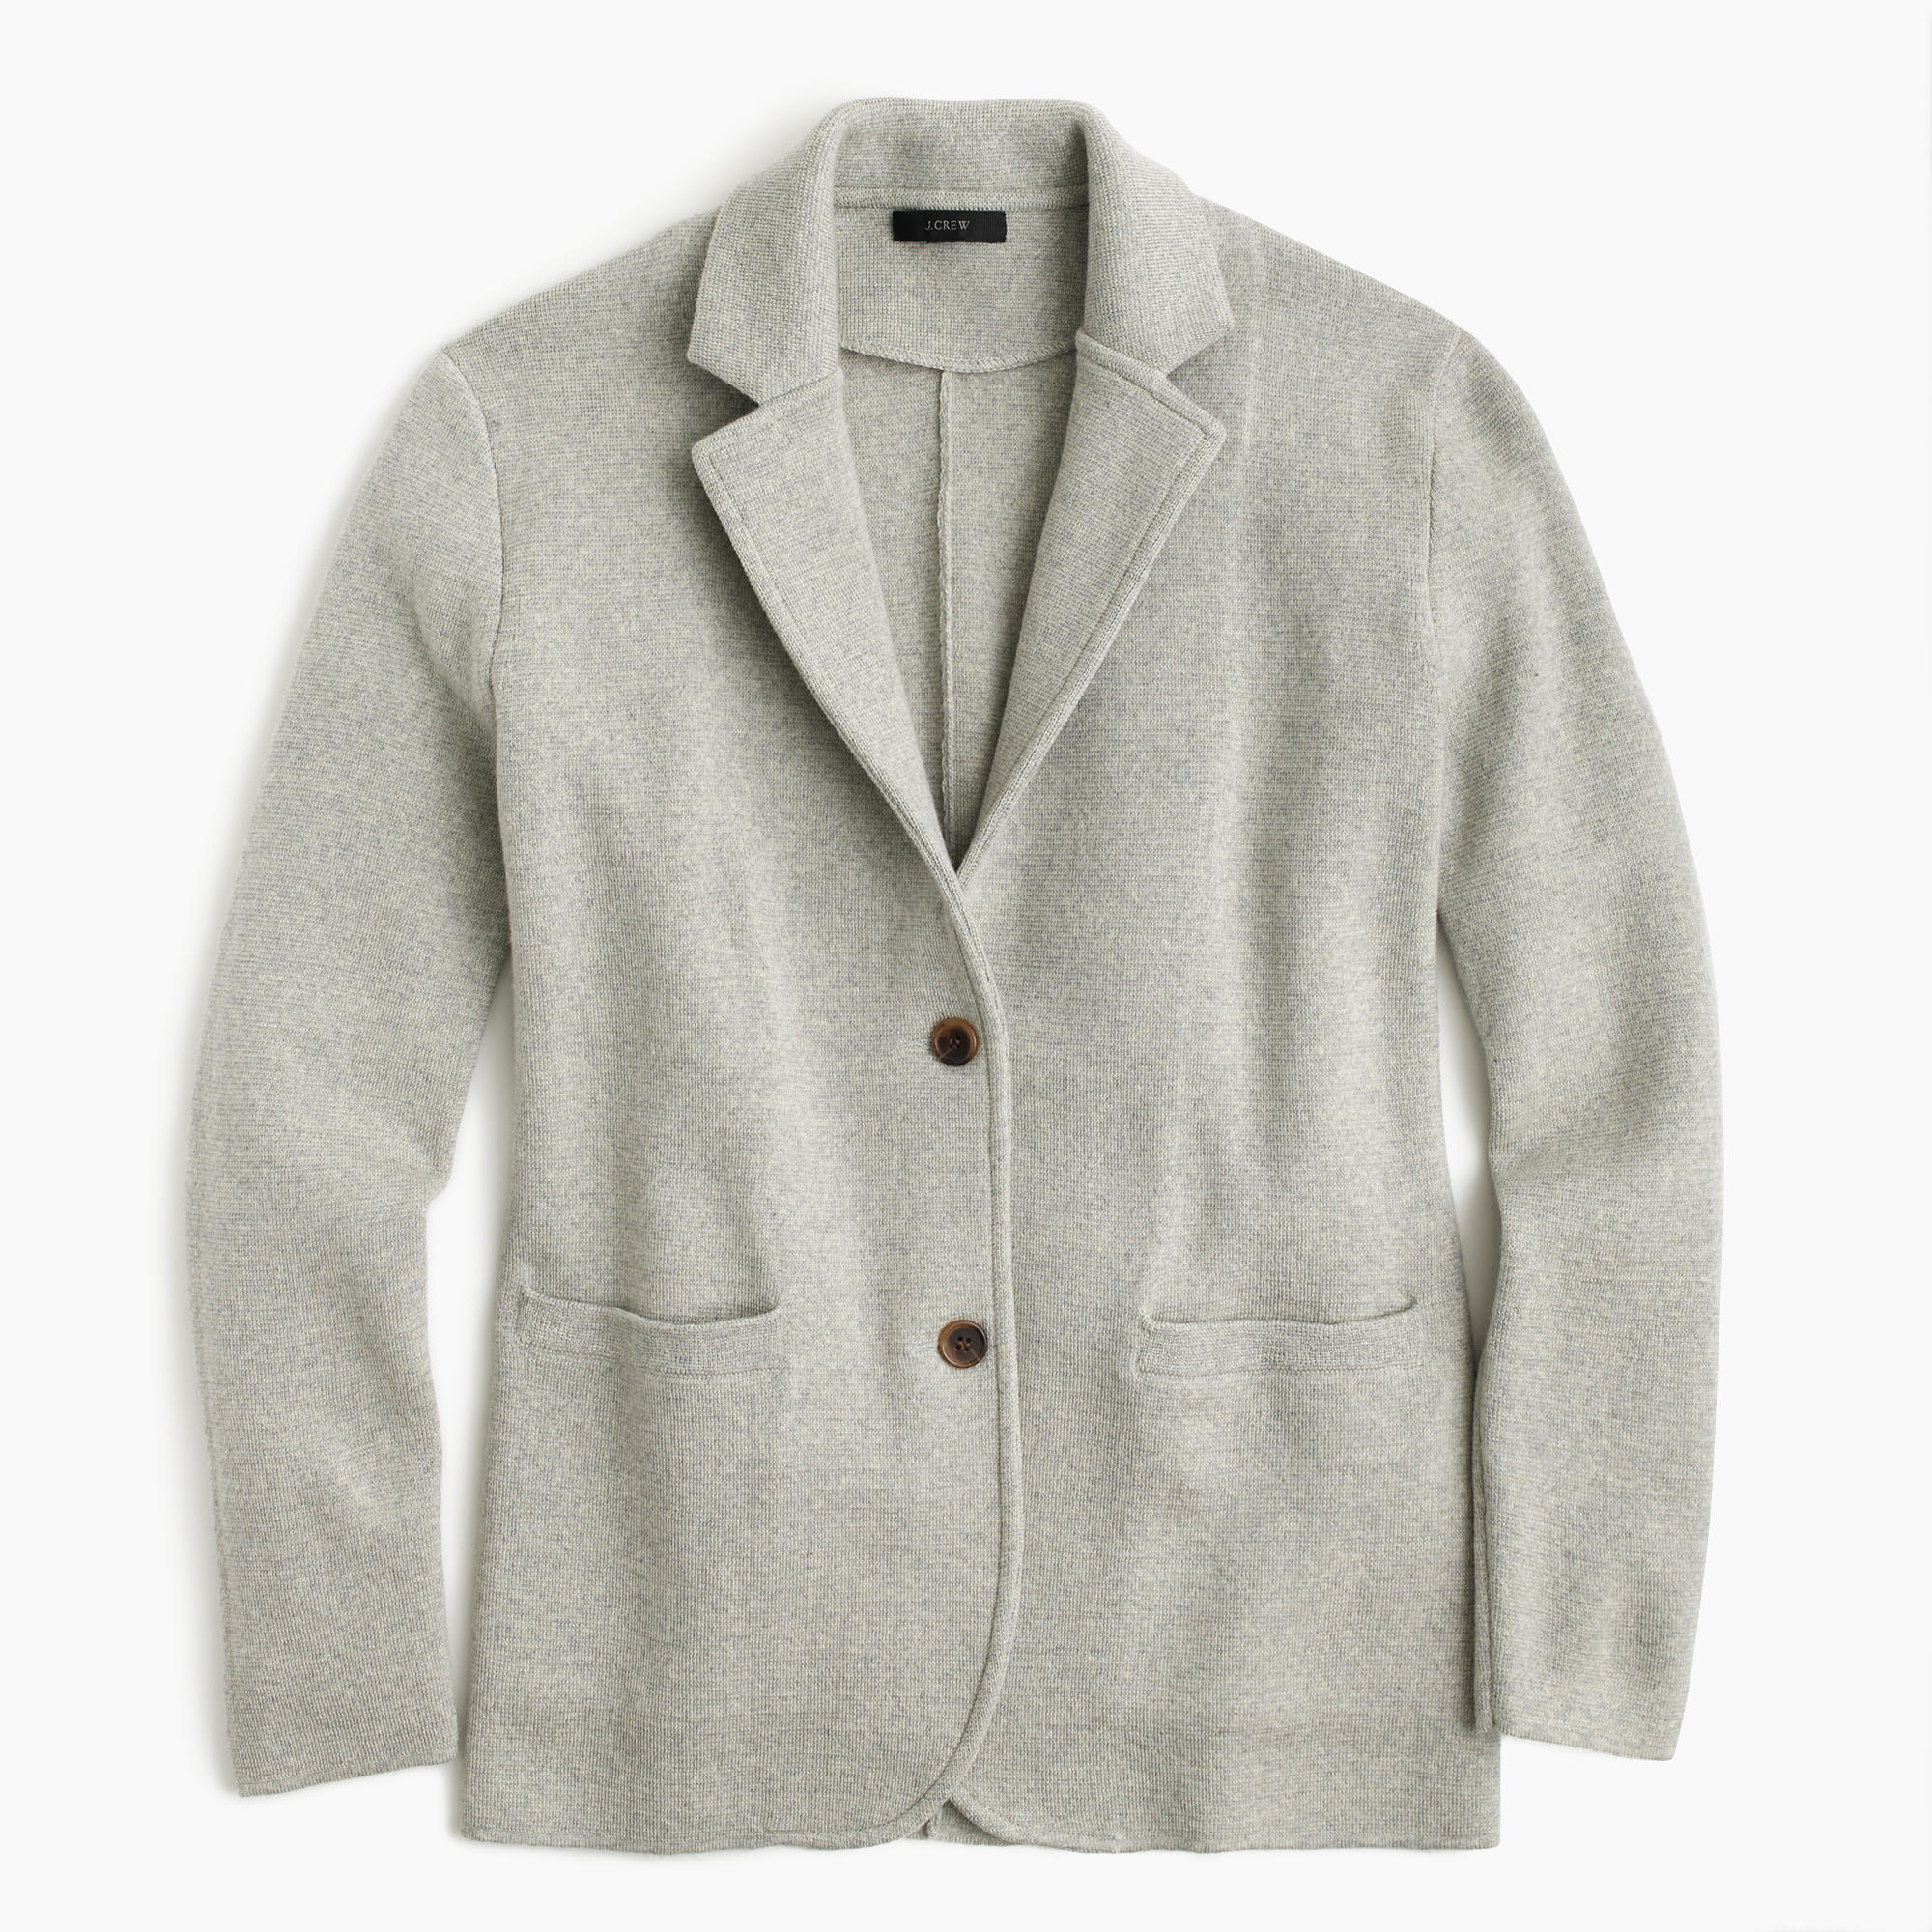 Merino Wool Sweater-Blazer : Women's Sweaters | J.Crew